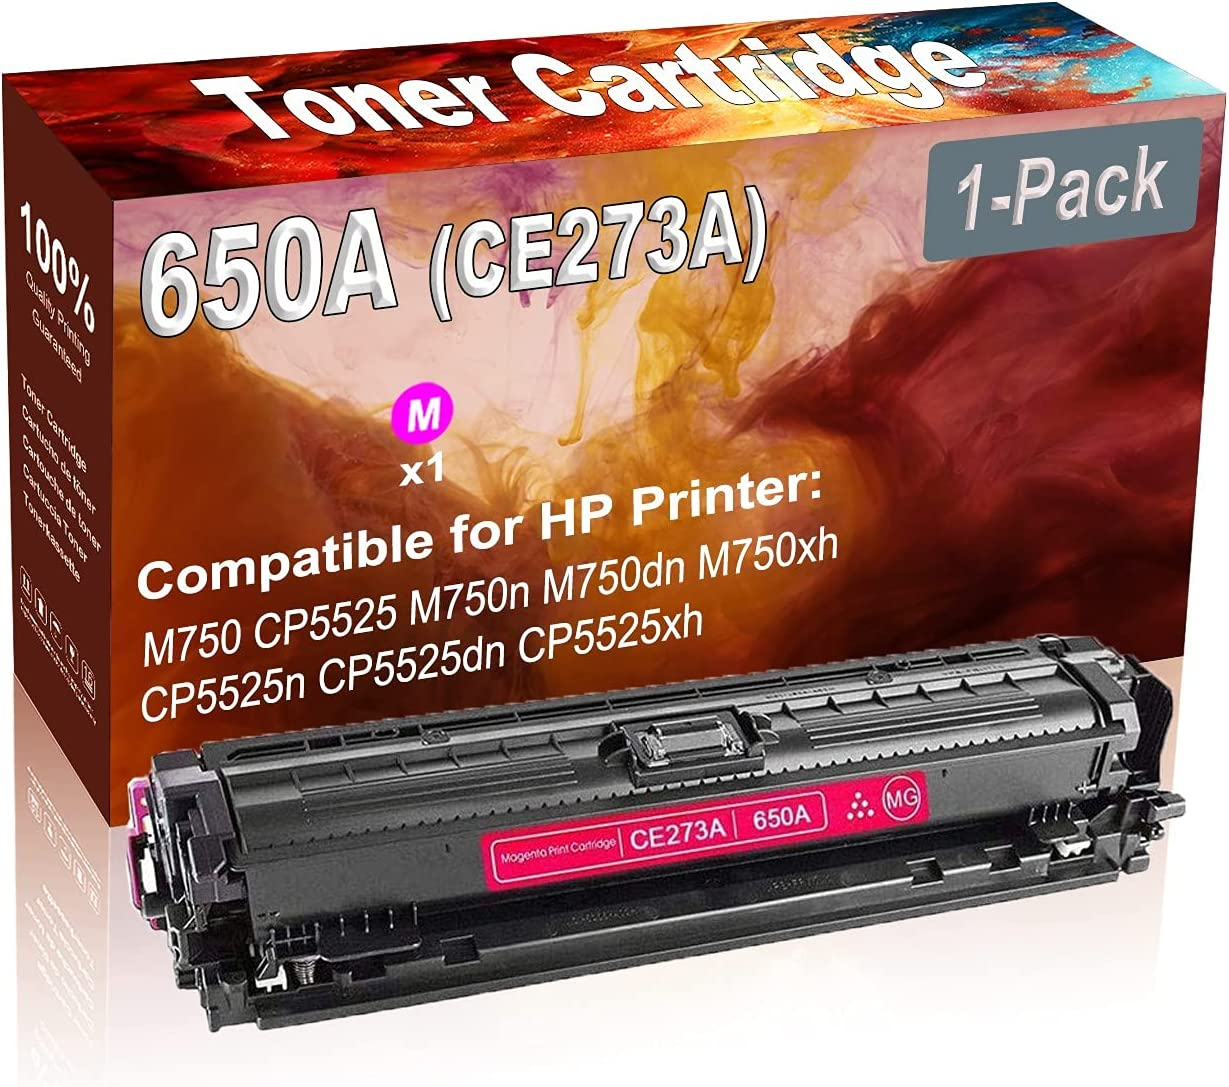 1-Pack (Magenta) Compatible High Yield 650A (CE273A) Printer Toner Cartridge use for HP M750 CP5525 M750n Printers